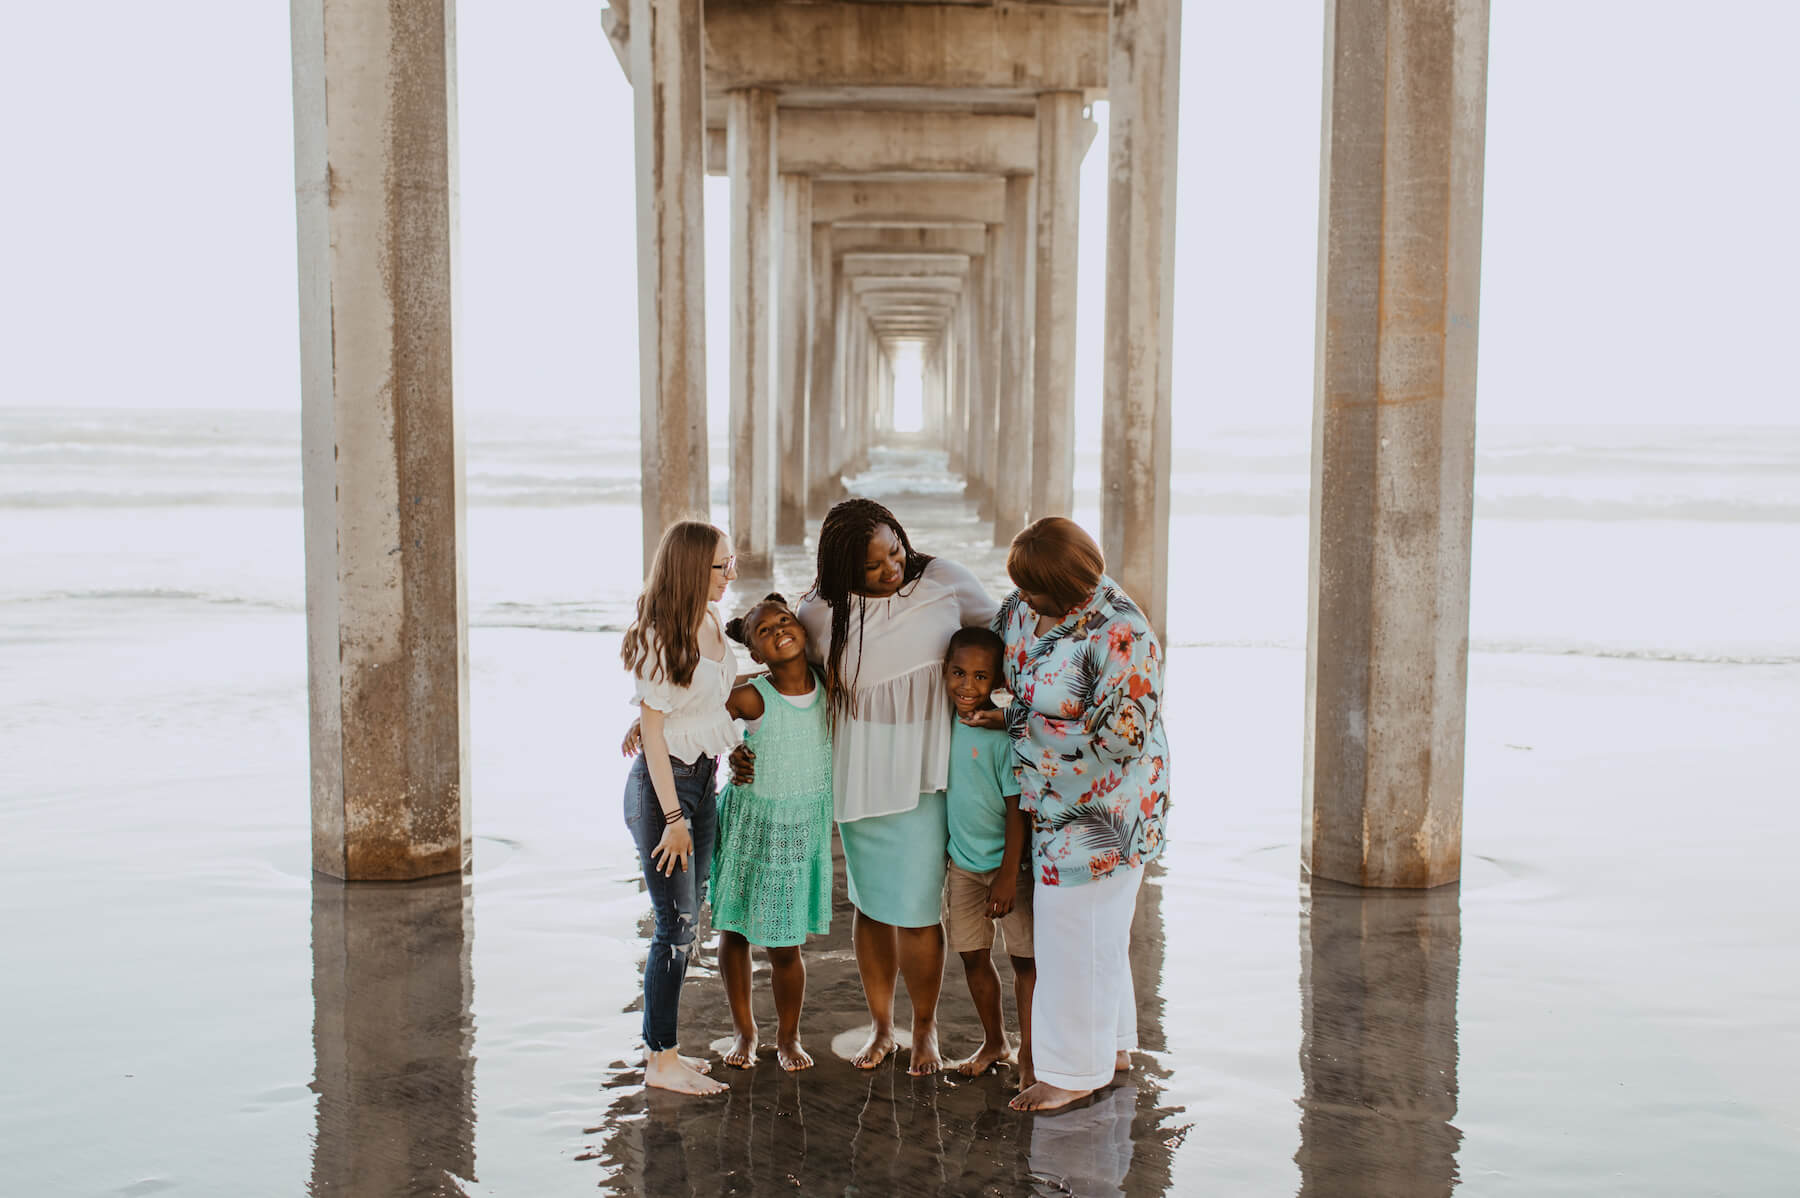 A family standing under the boardwalk on the beach in San Diego, California